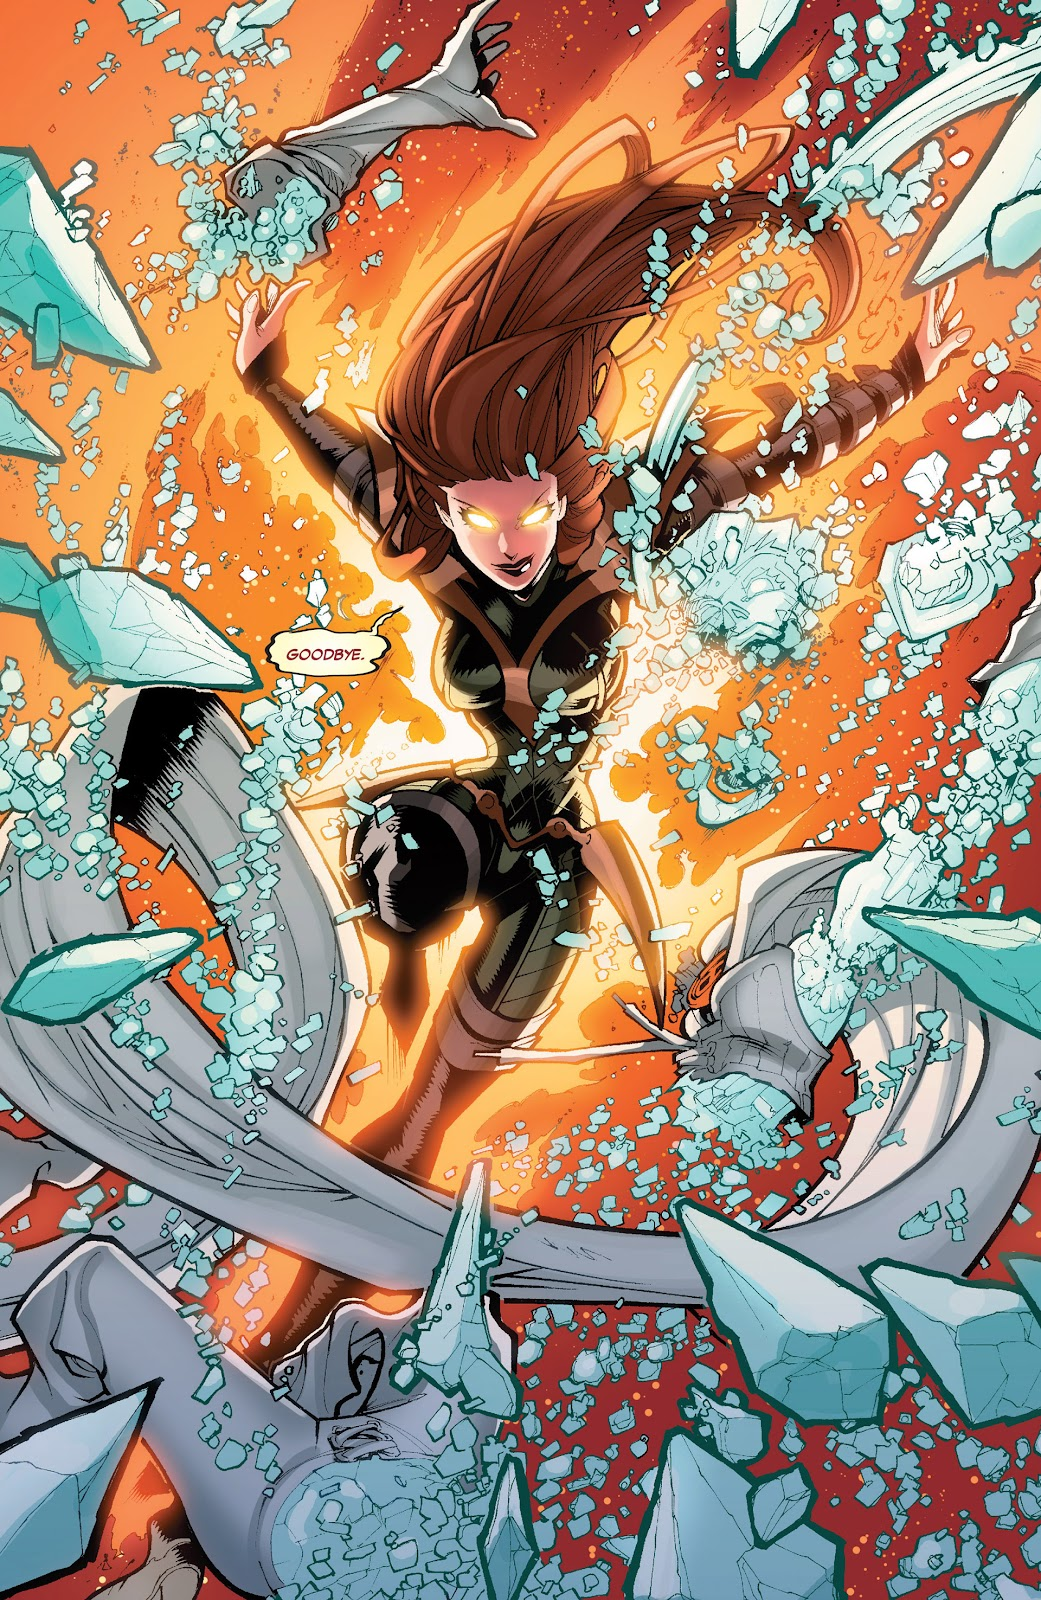 Read online What If? AvX comic -  Issue #3 - 14